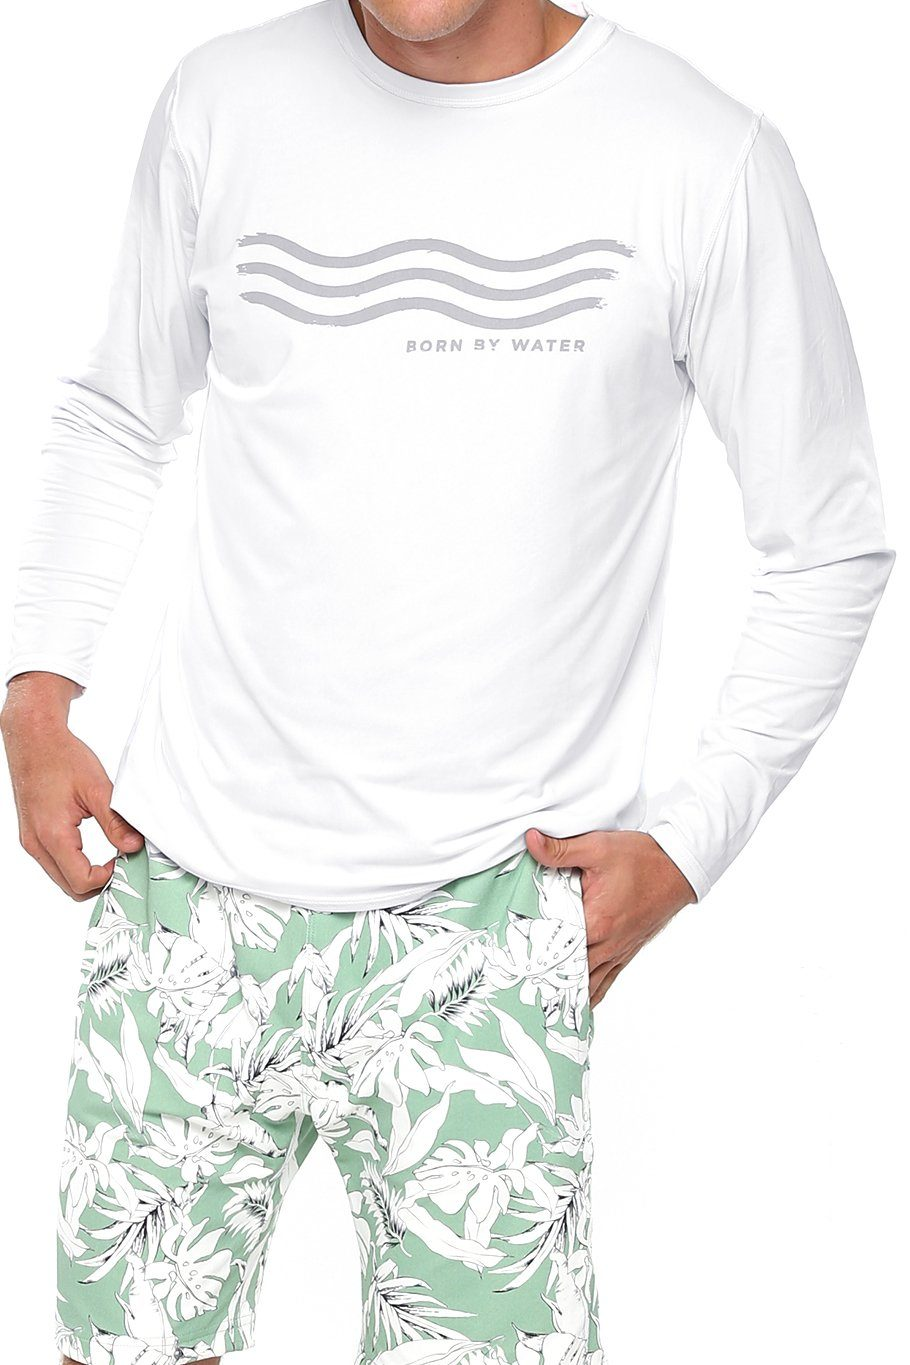 Long Sleeve Rashguard - Born By Water - Shore